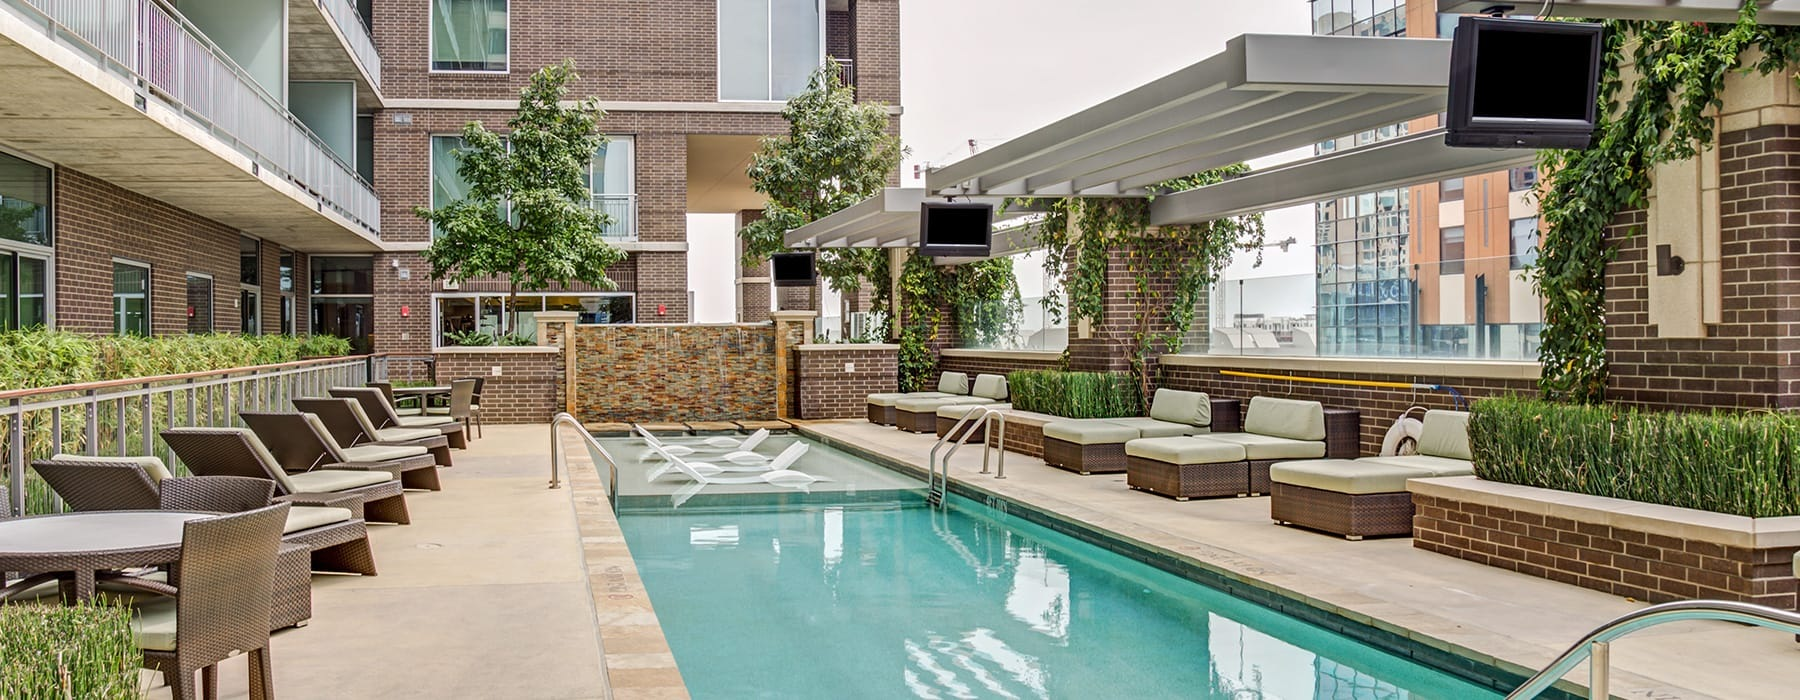 spacious swimming pool with near landscaping and ample reclining seats